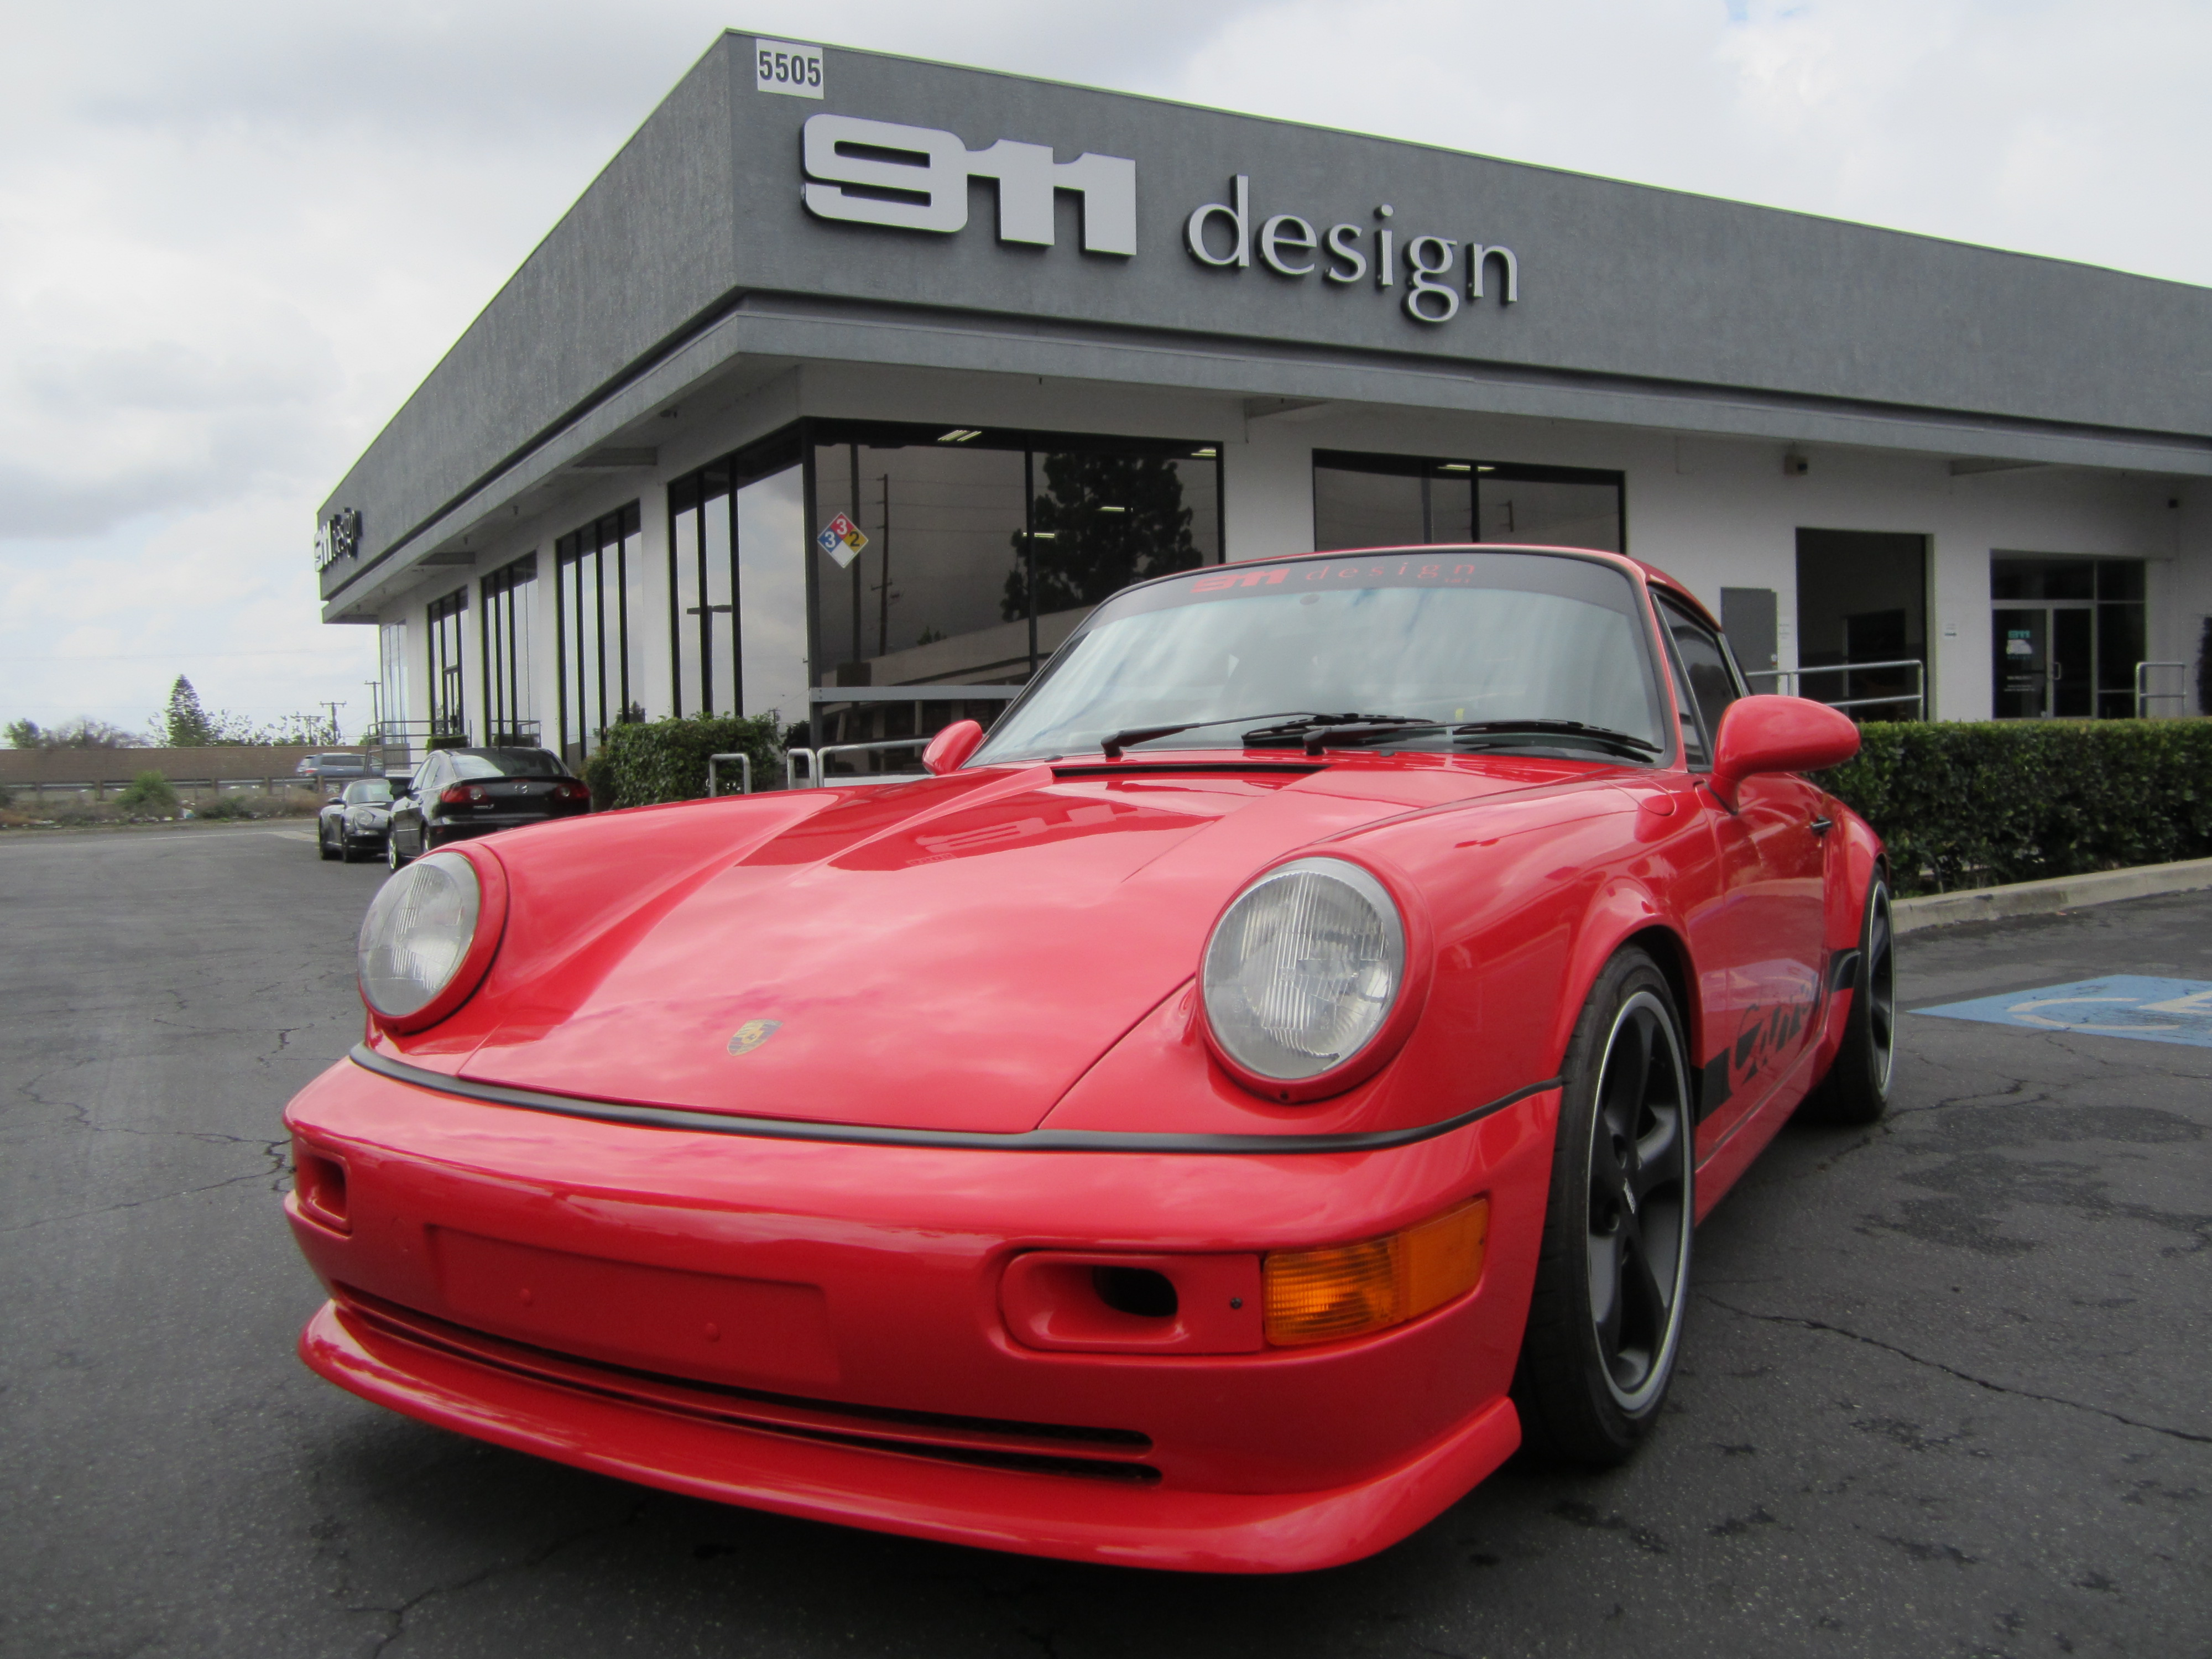 A 1989 Porsche 964 after being completely customized with Porsche 933 parts.